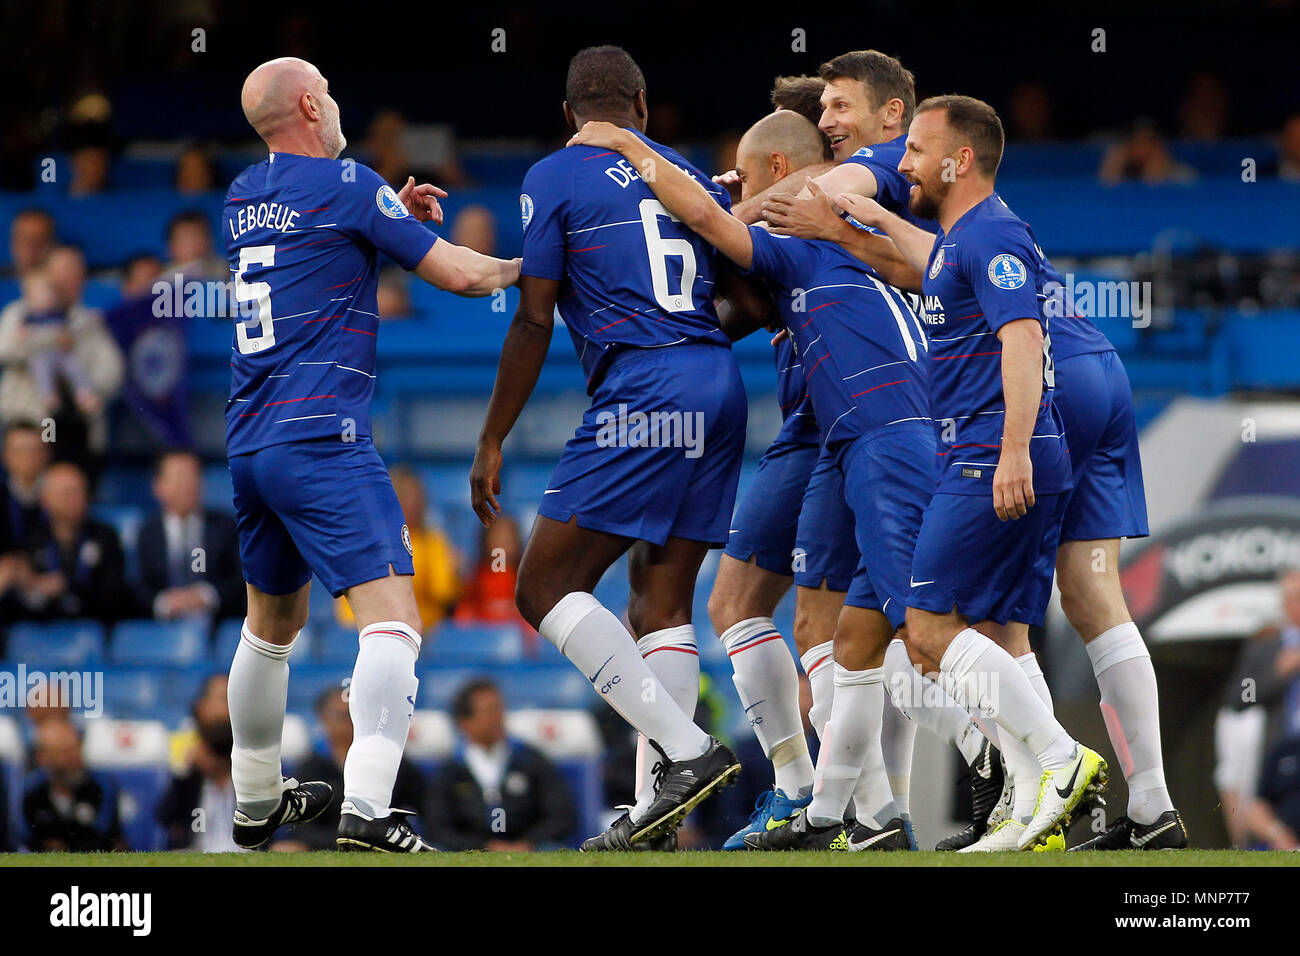 chelsea football team 2018 stock photos  u0026 chelsea football team 2018 stock images